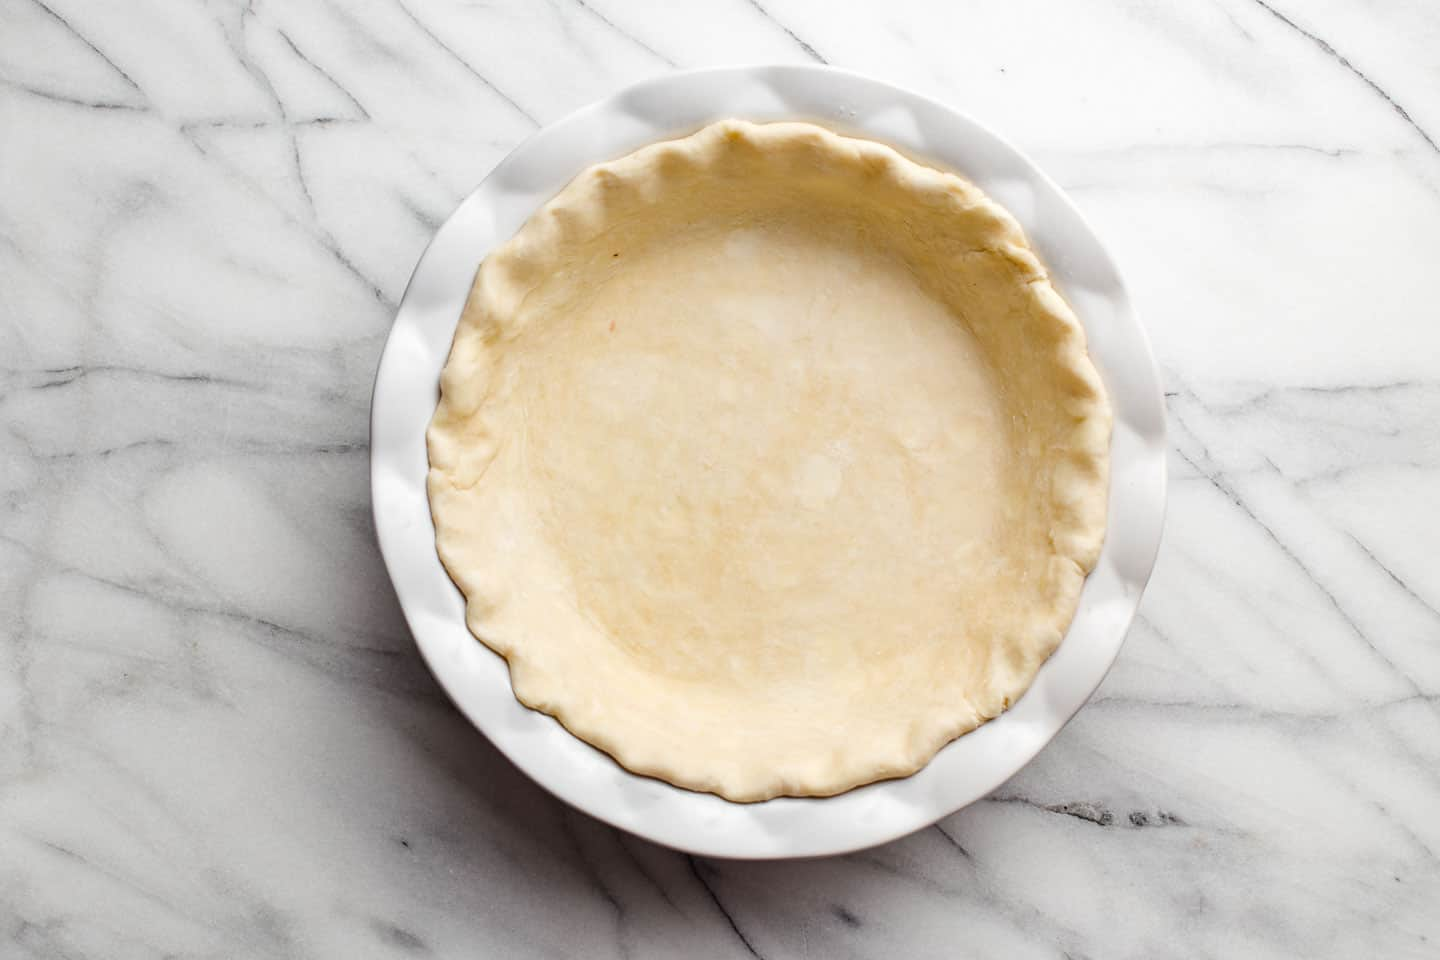 Unbaked all-butter pie crust in a pie plate.